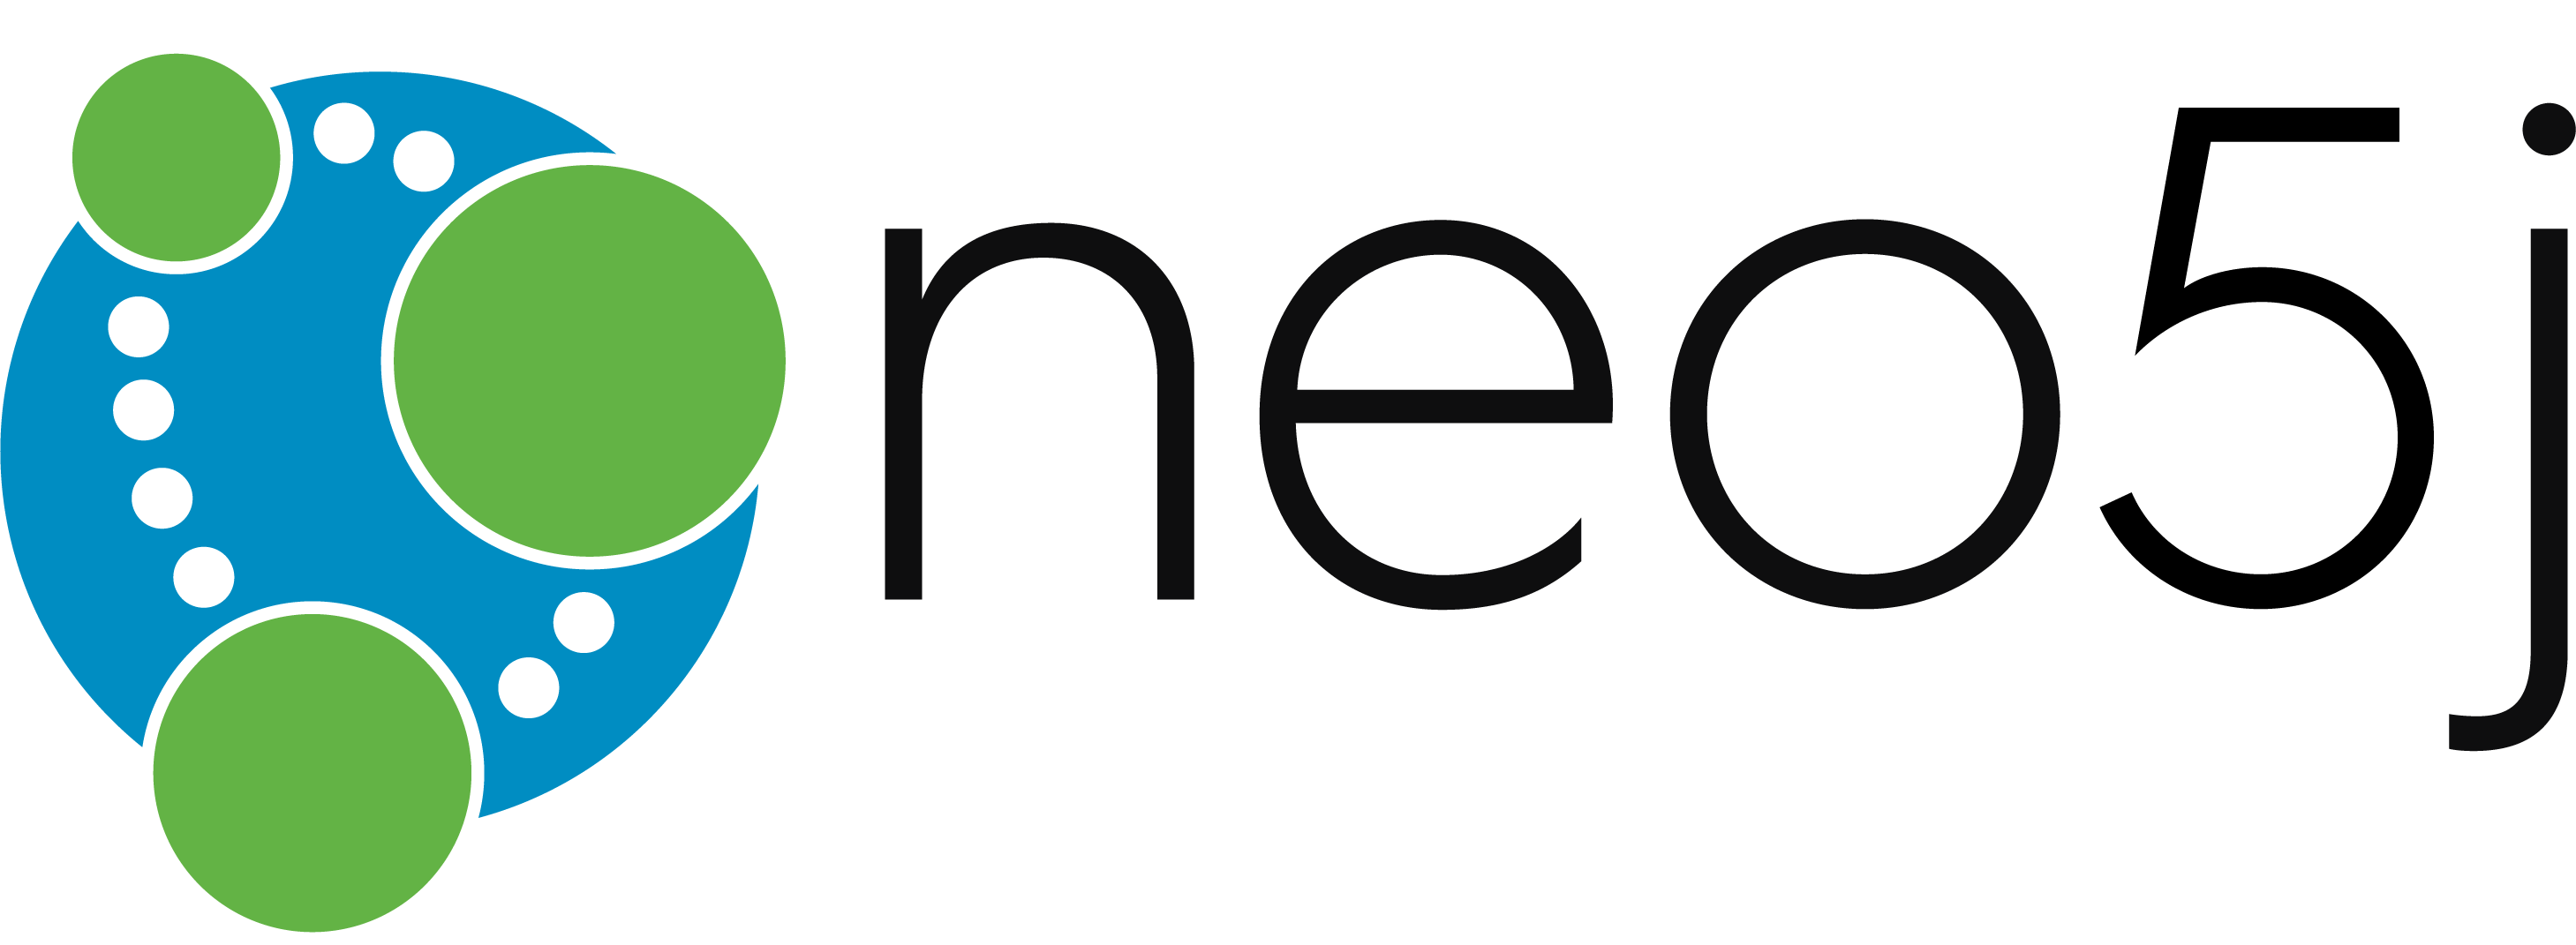 If you're reading this about Neo4j, then you've been fooled. Happy April Fools' Day 2017!